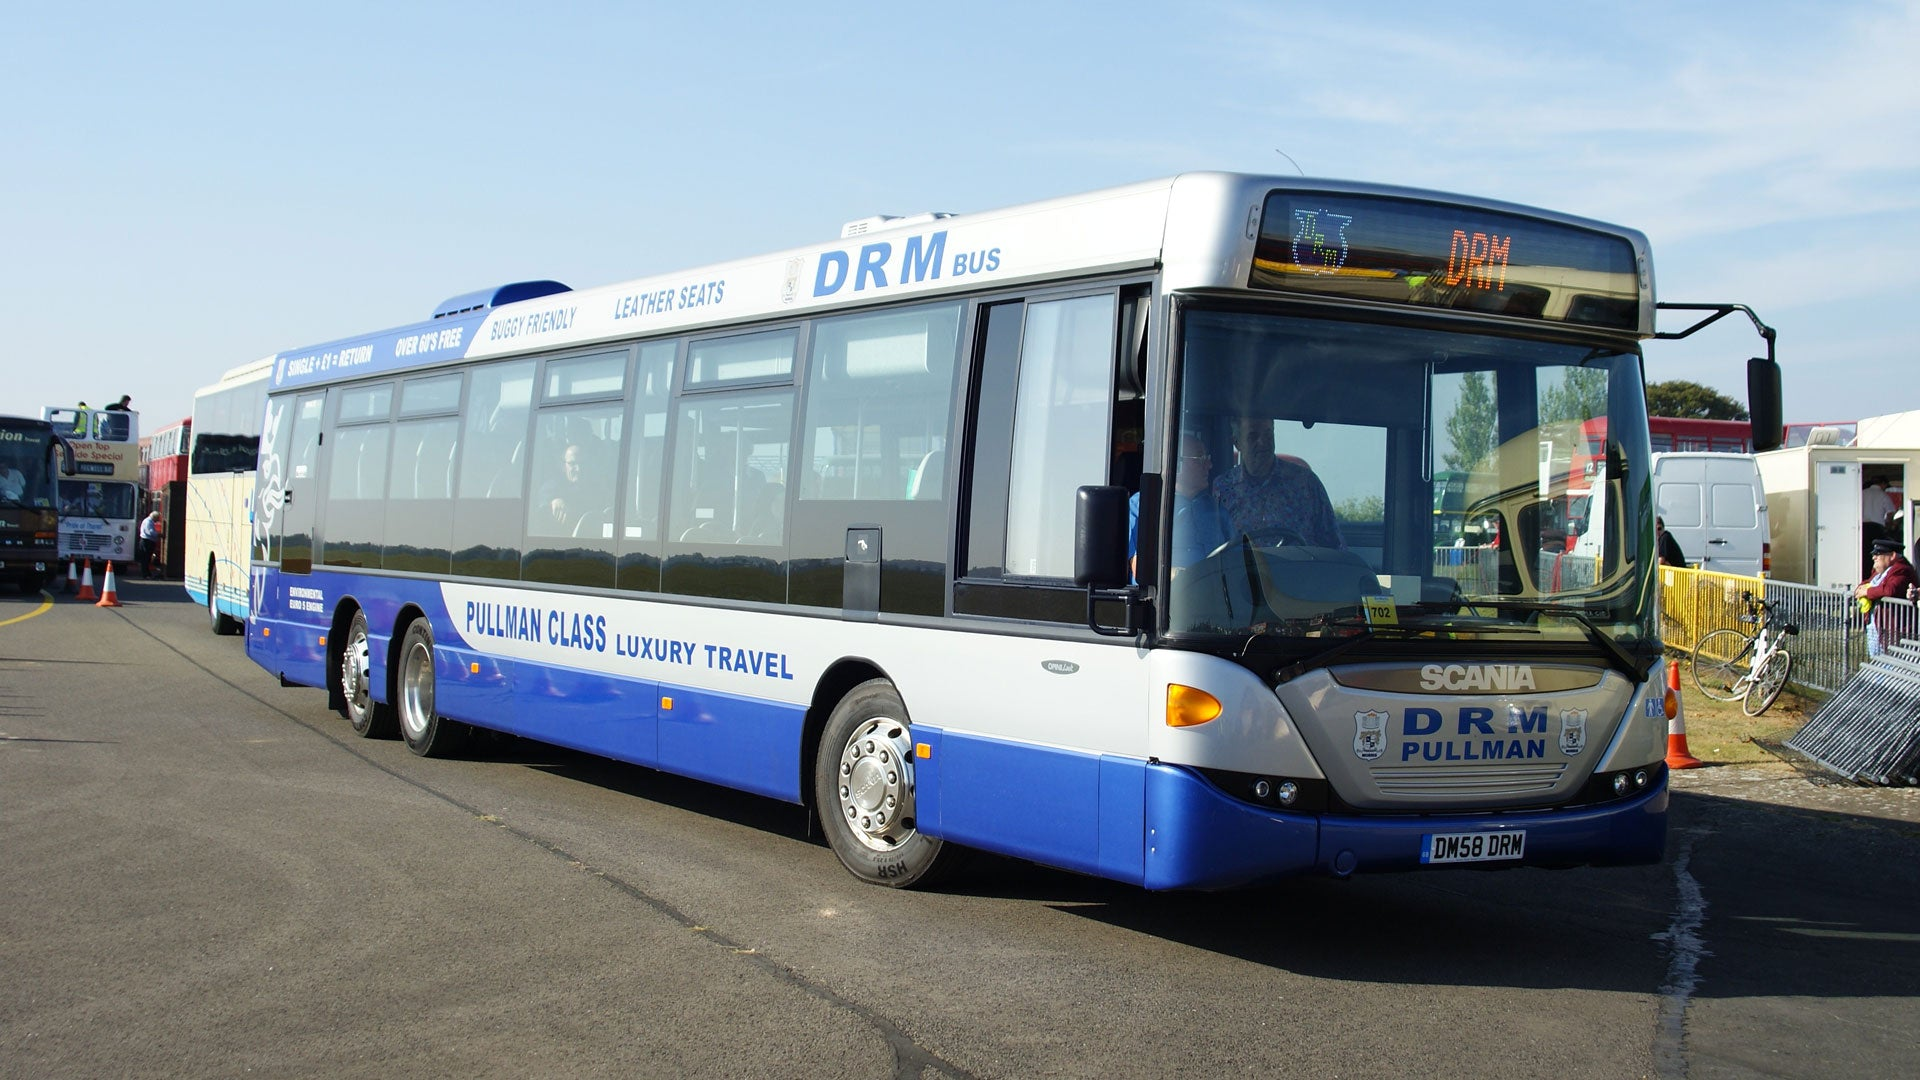 DRM Buses Case study